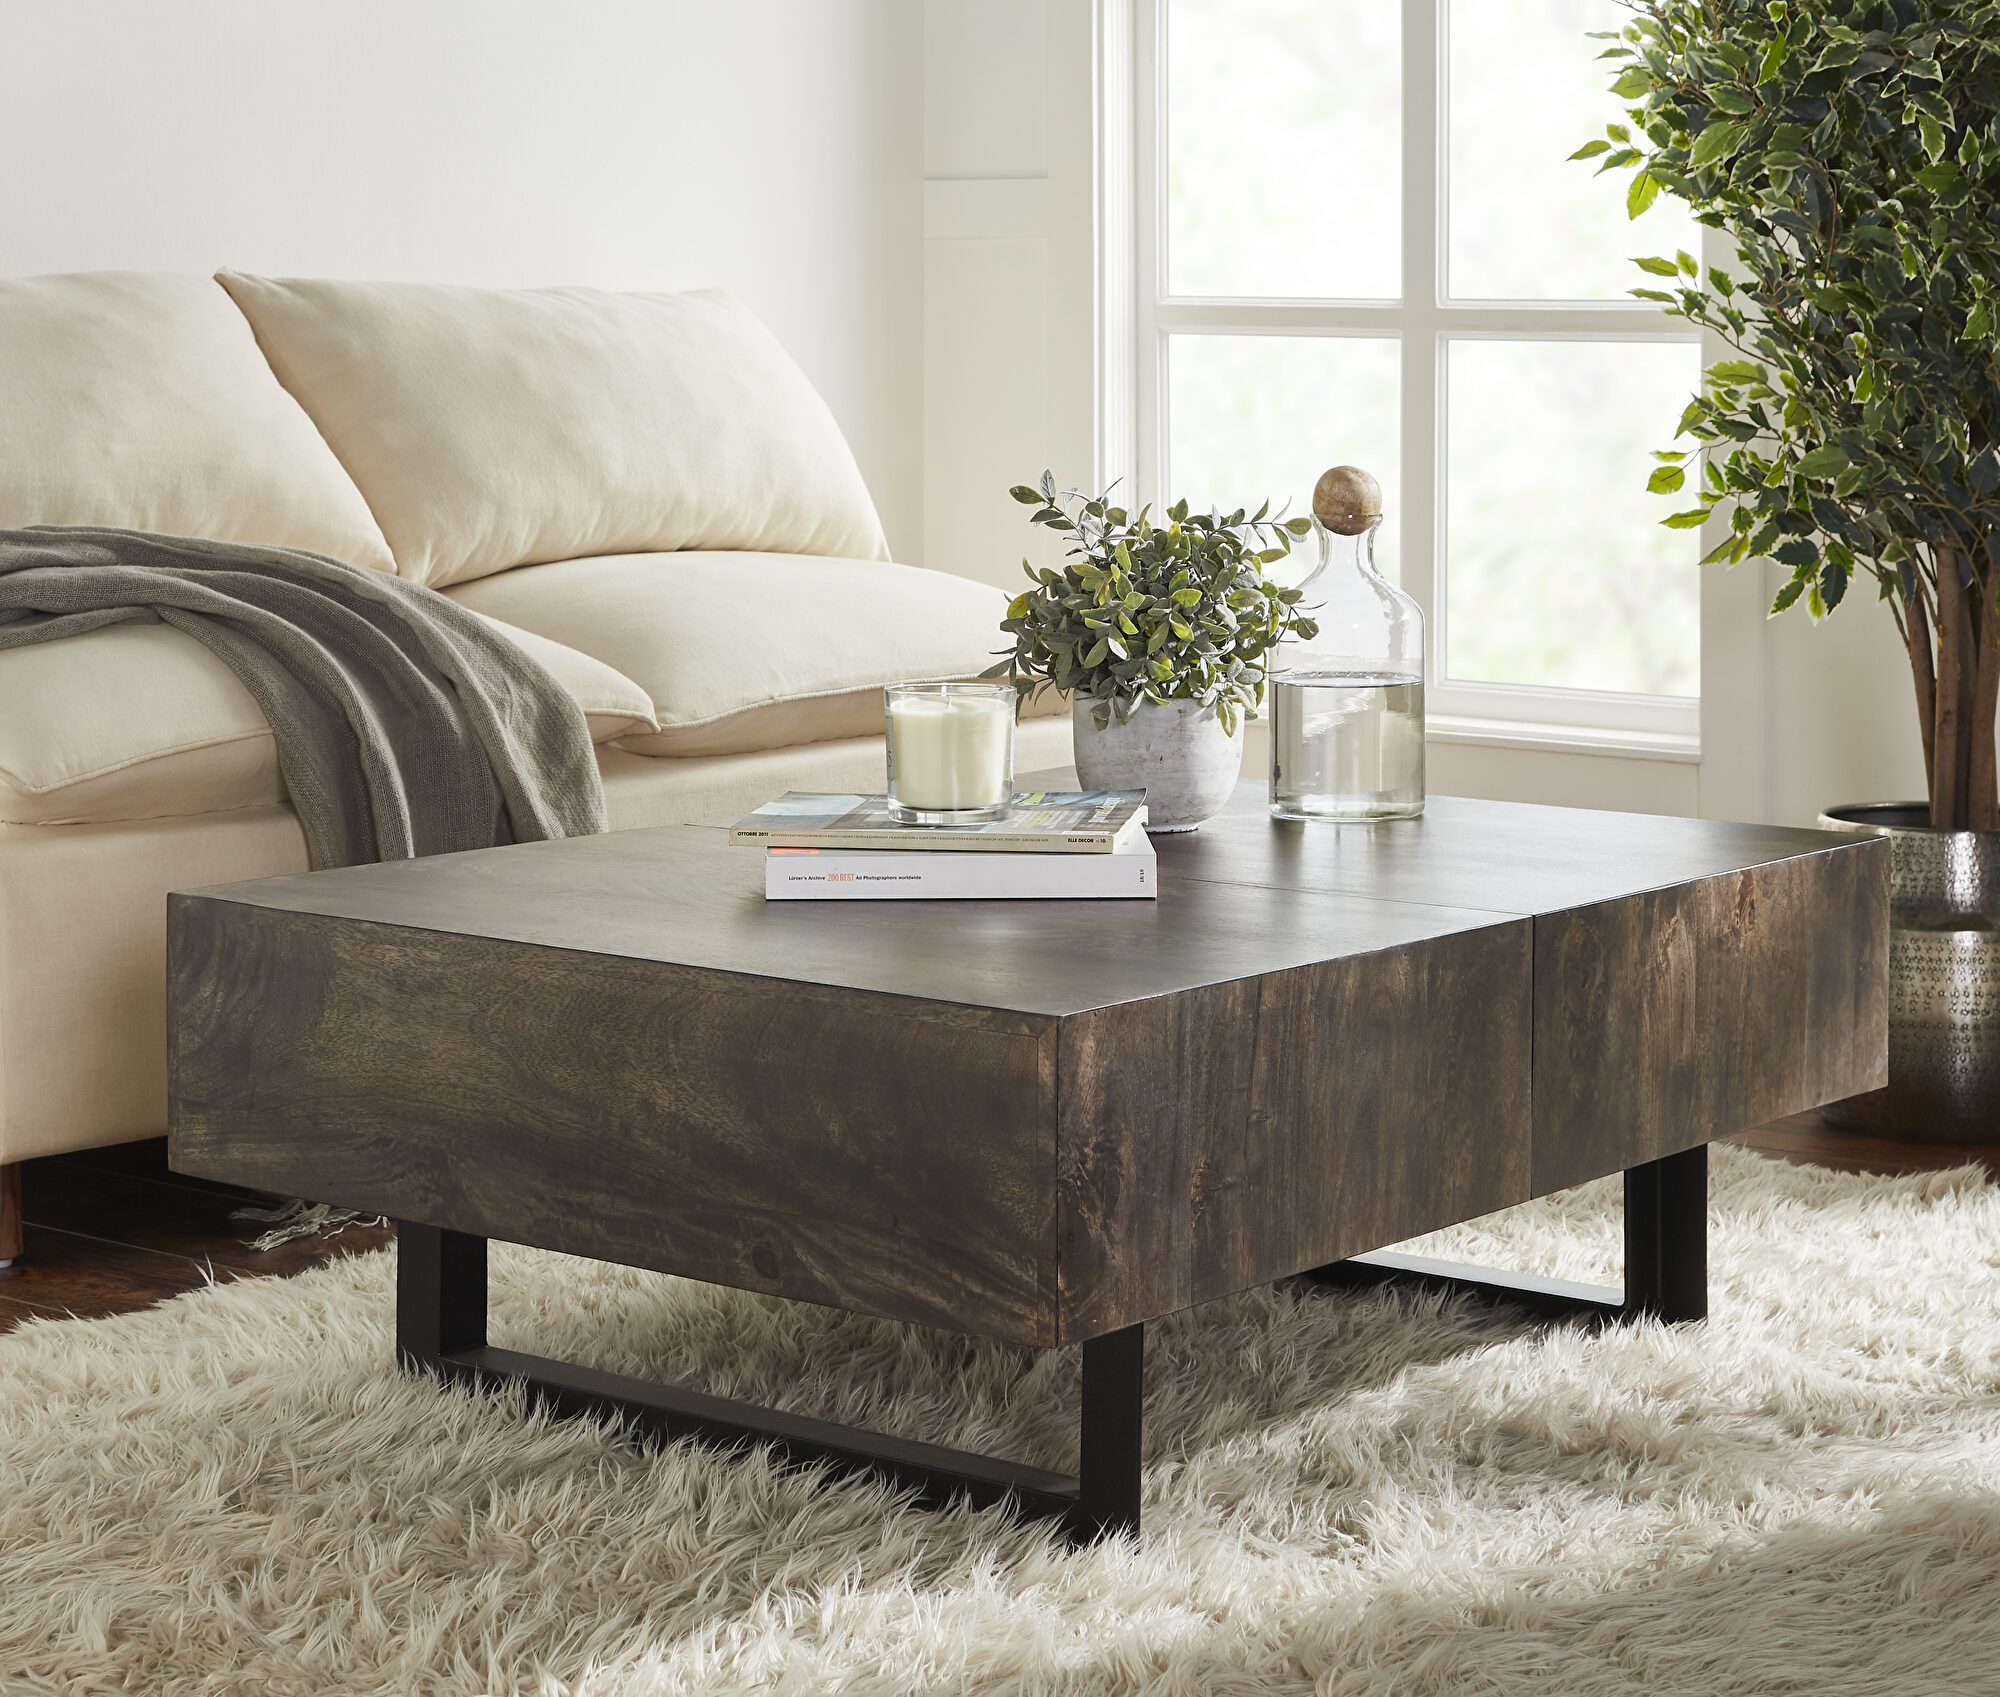 Glide Olive Coffee Table Gc01 103 Mod Arte Coffee Tables In 2021 Coffee Table Big Coffee Table Coffee Table With Storage [ 1697 x 2000 Pixel ]